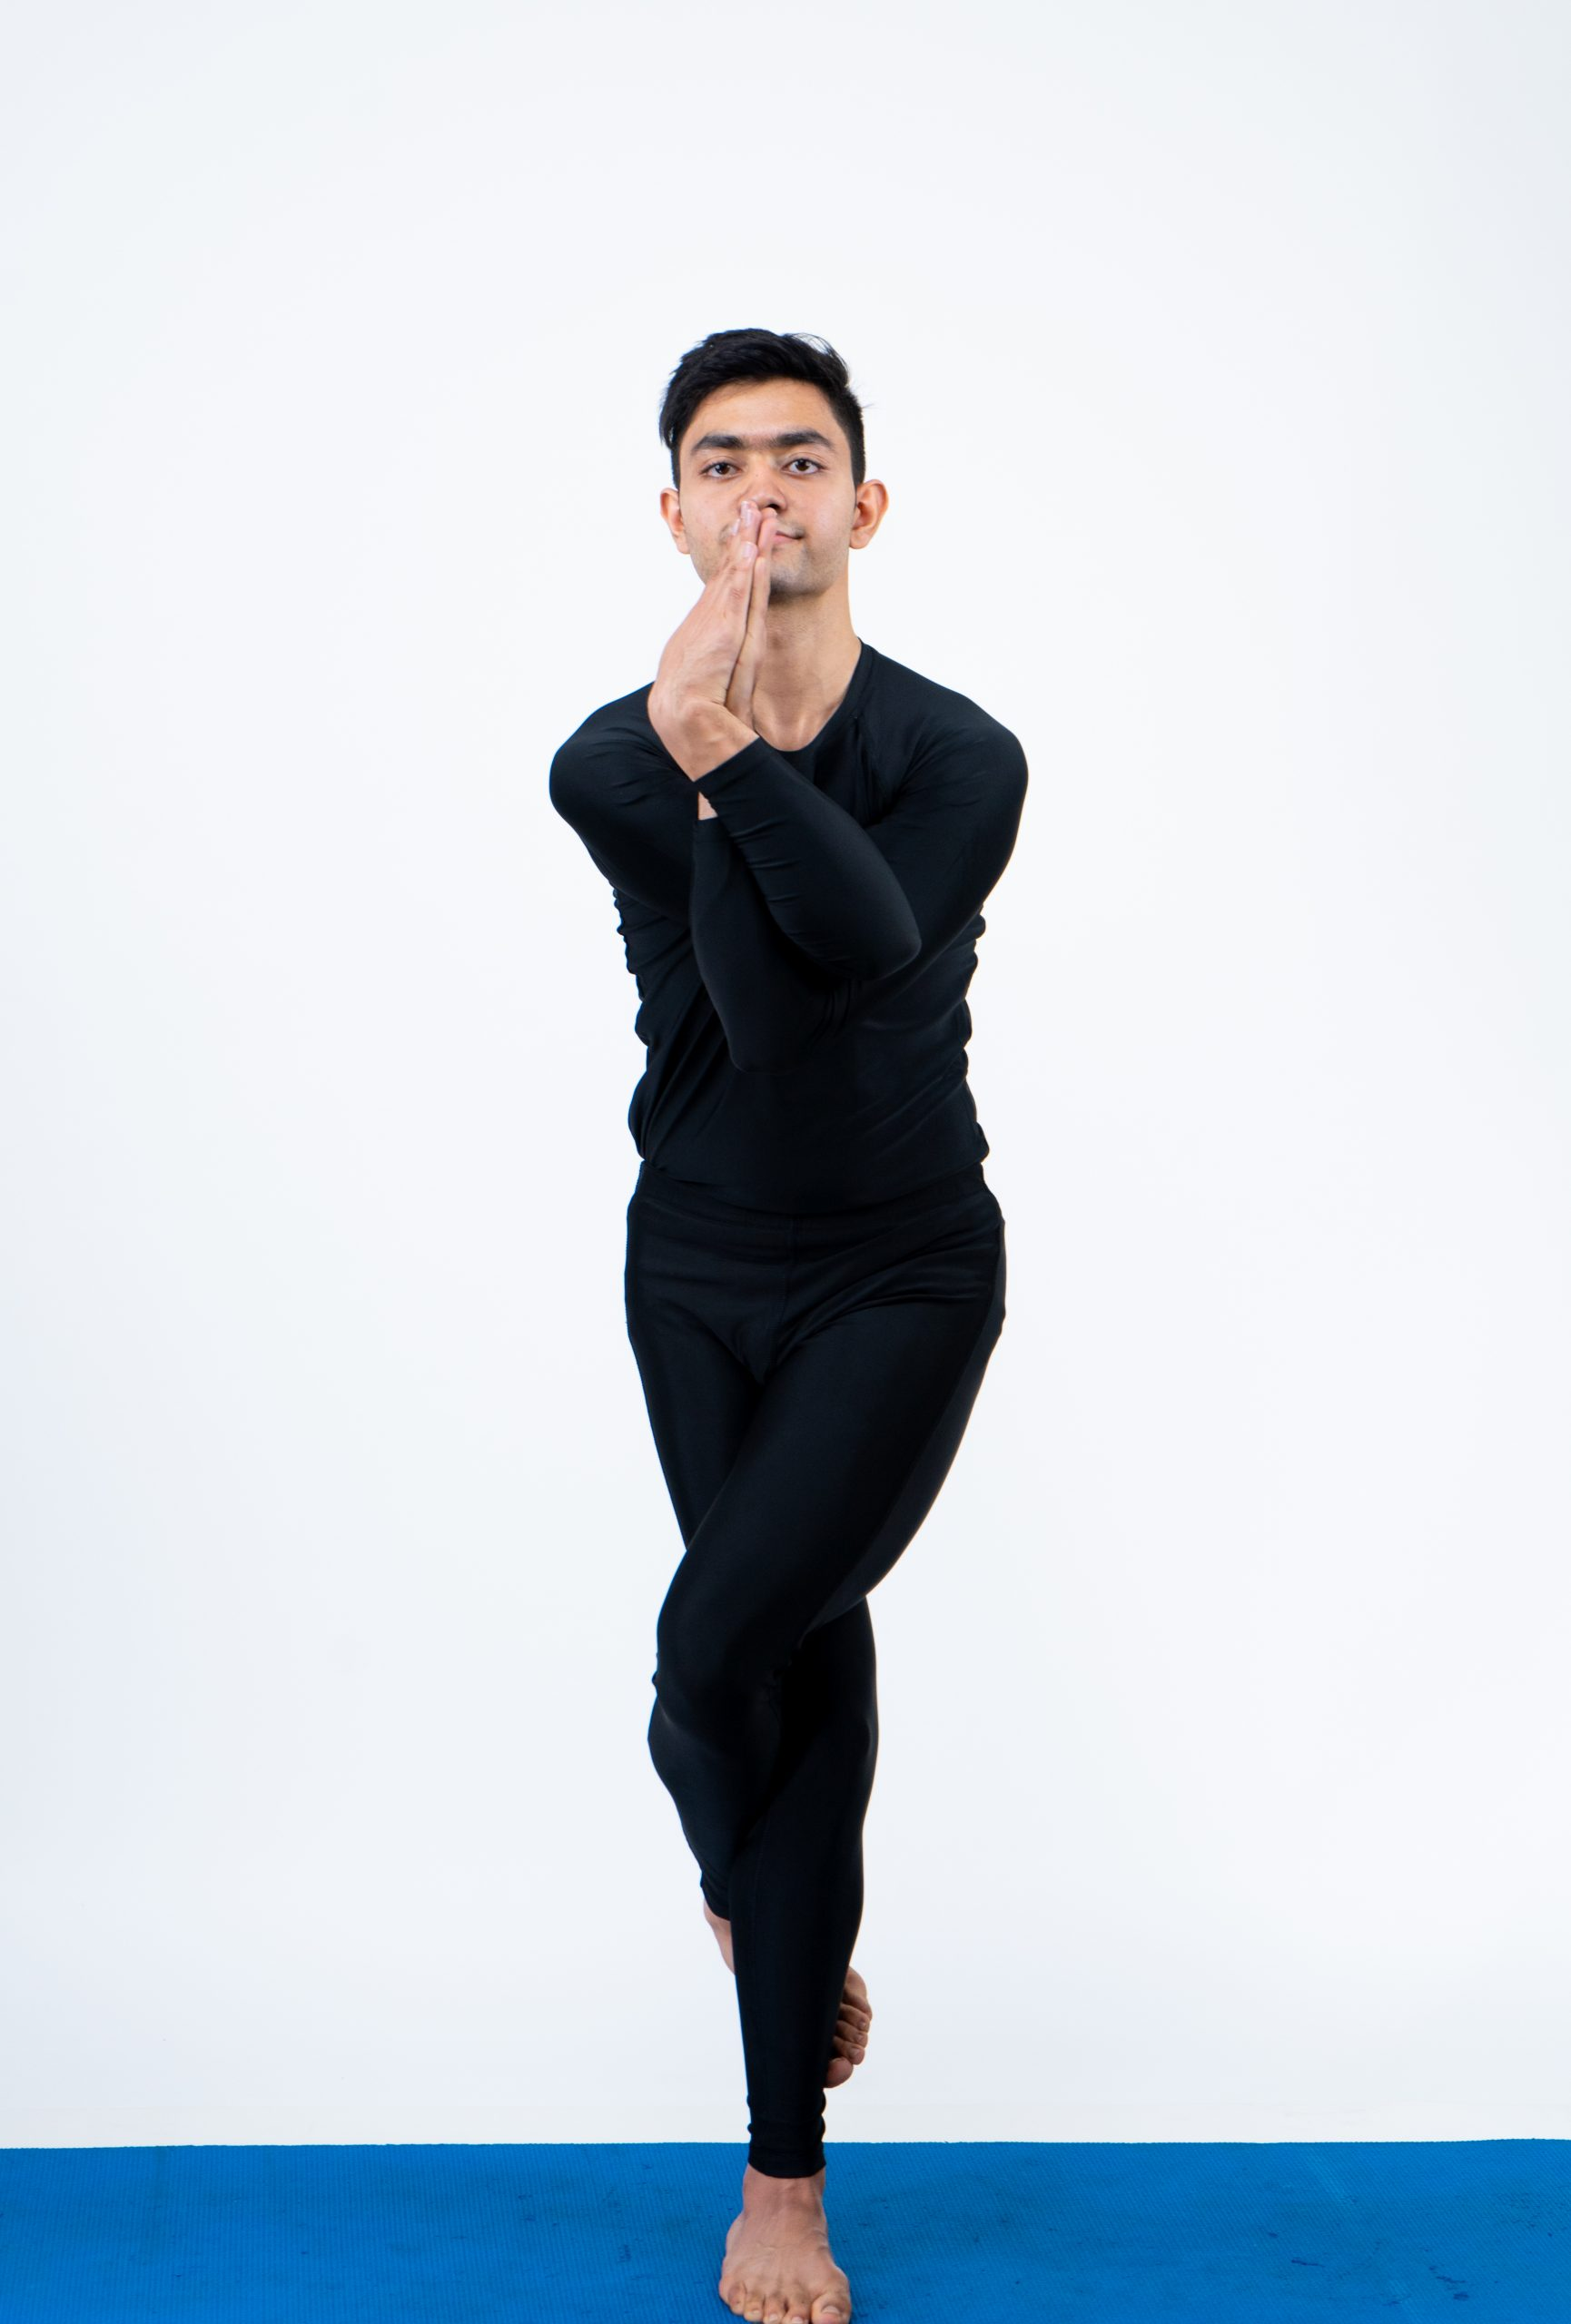 Garudasana (Eagle Pose)